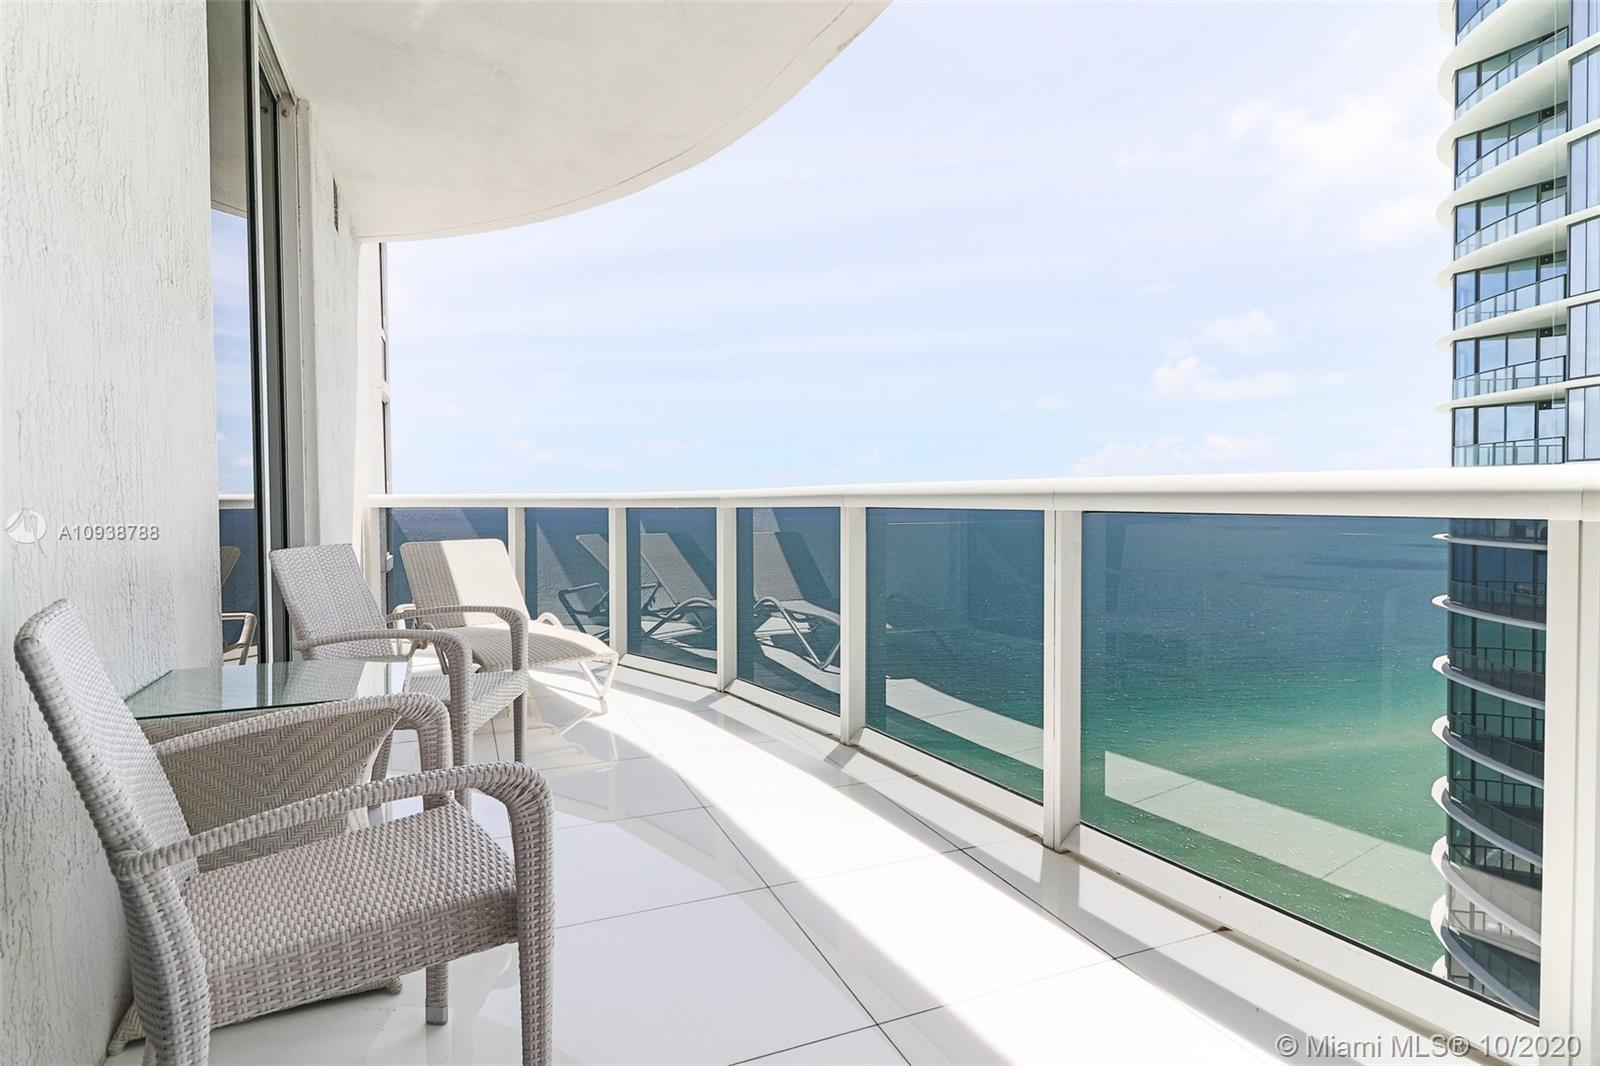 BEAUTIFUL FURNISHED BY ARTEFACTO, 3 BEDROOMS, 3 1/2 BATHROOMS, 1974SF, WHITE GLASS FLOORS, FLOOR TO